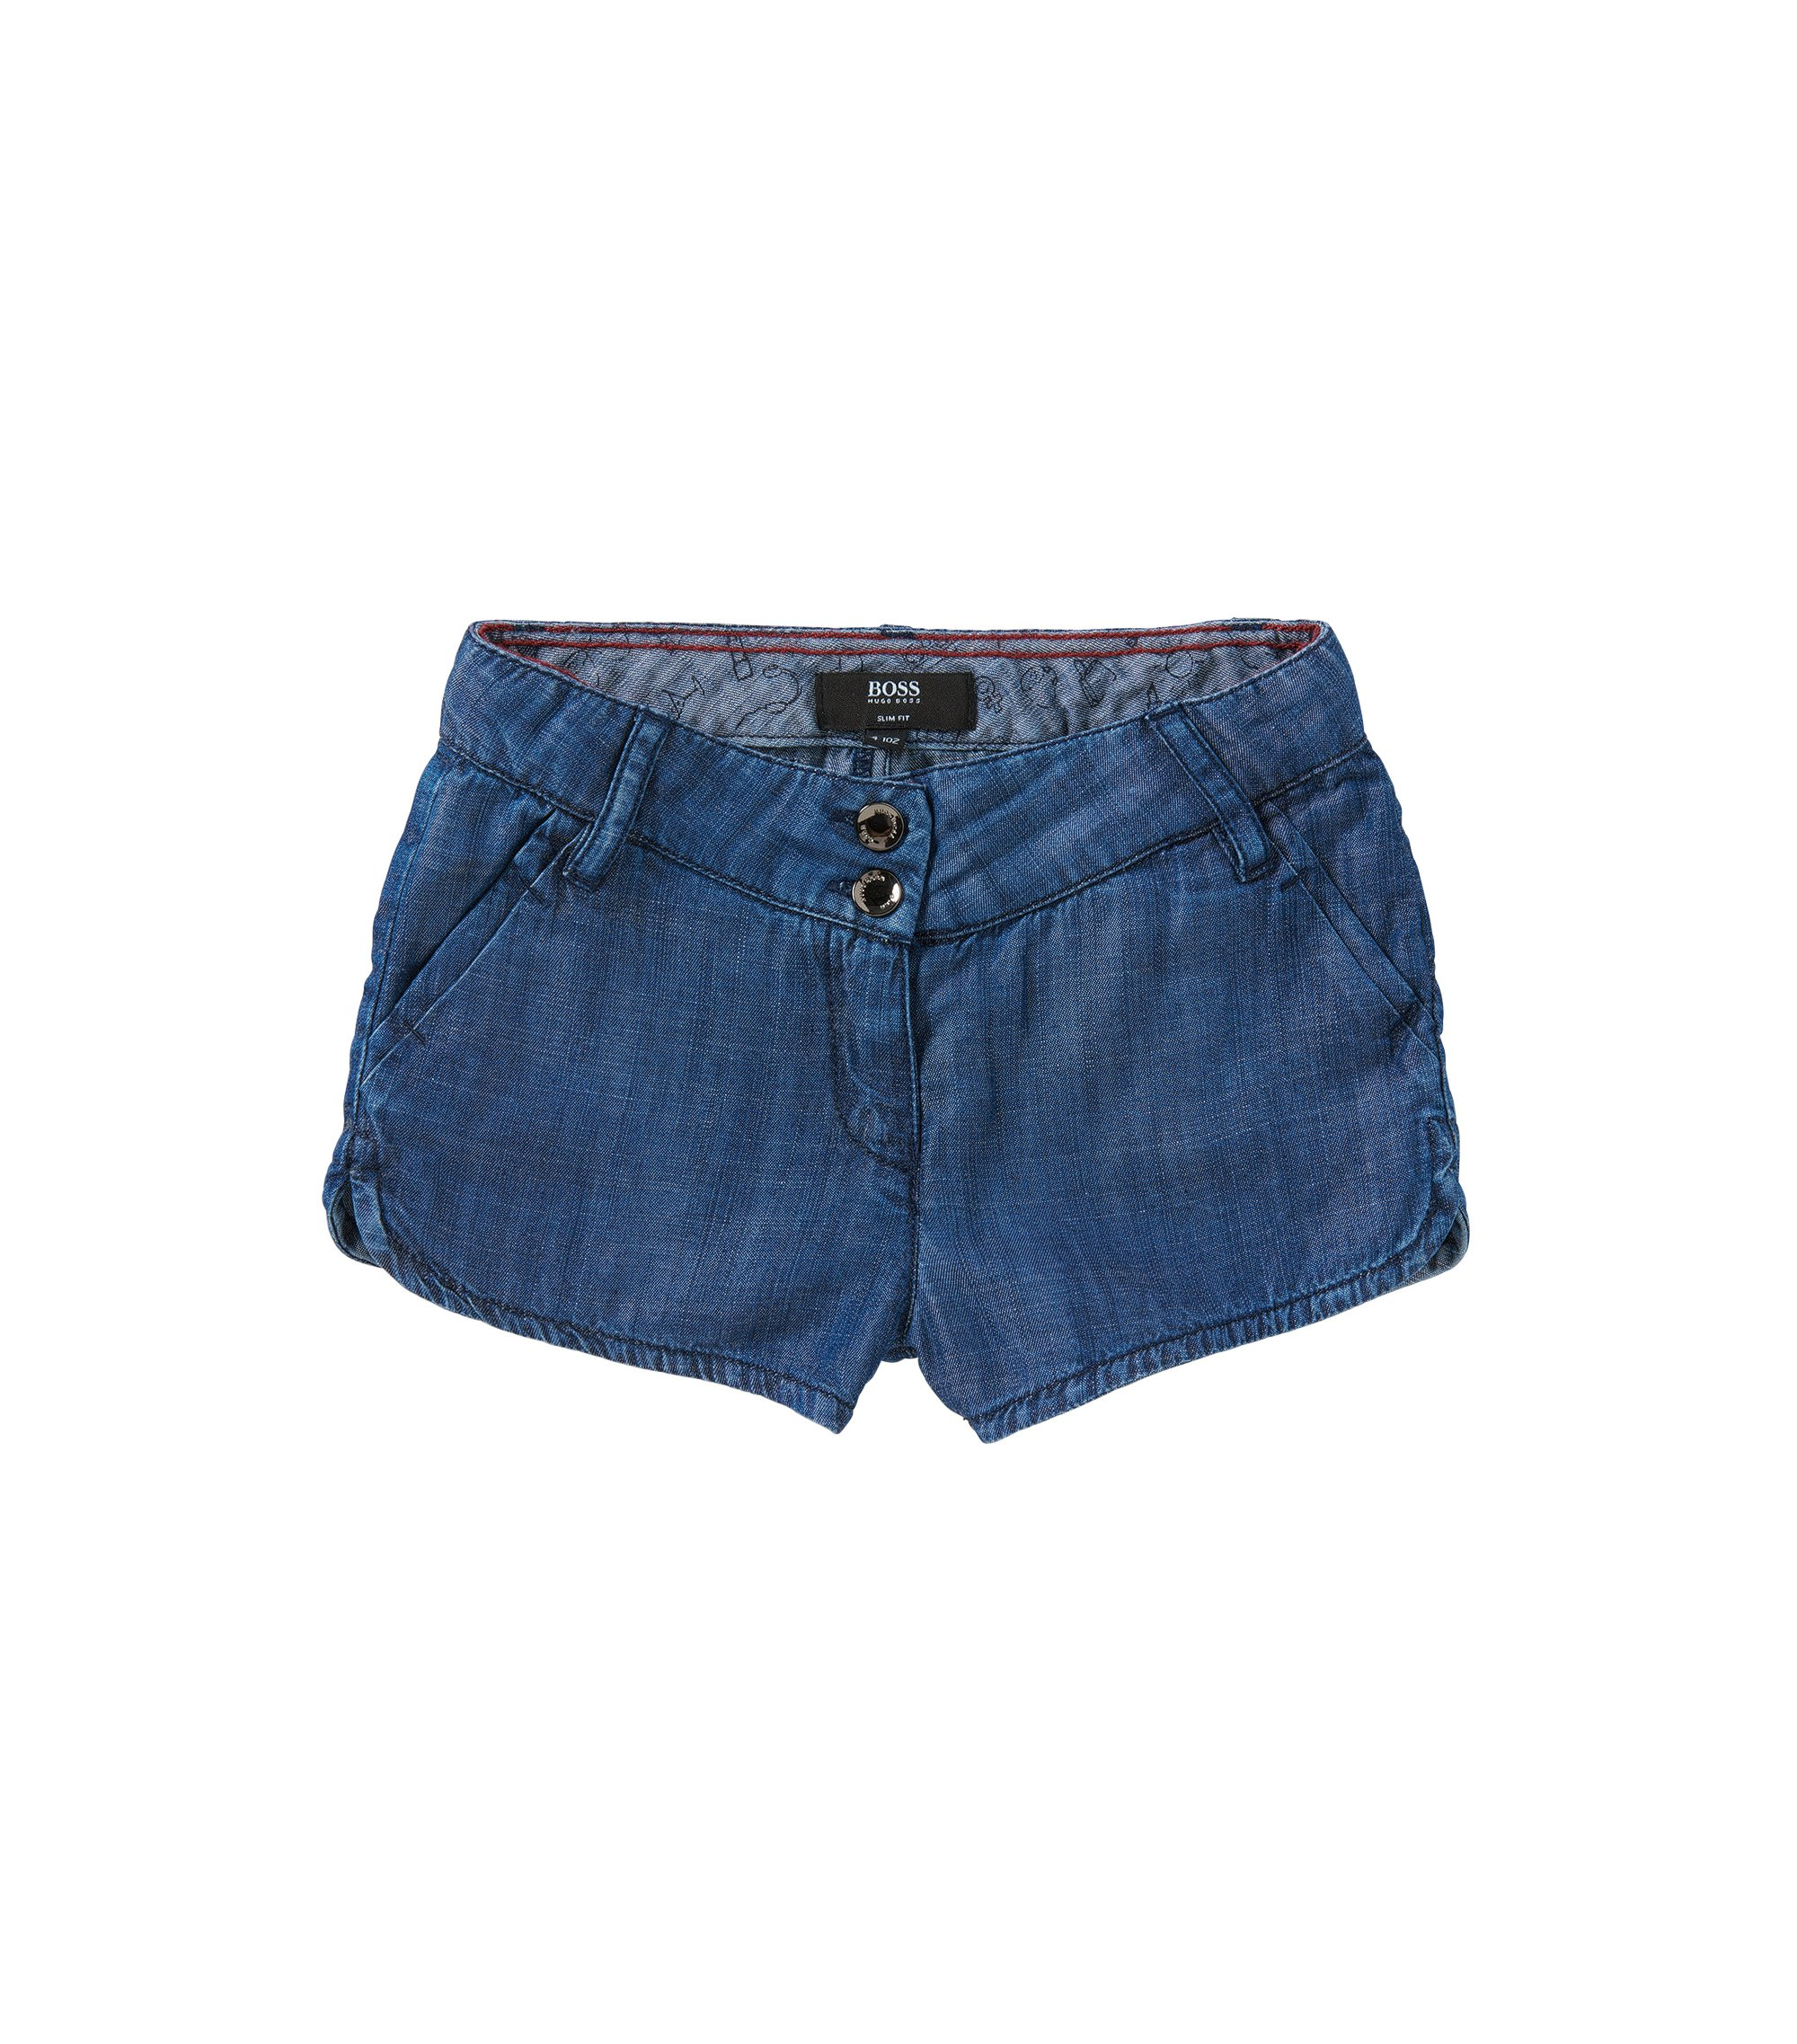 Slim-Fit Kids-Shorts in Denim-Optik: 'J14174', Blau